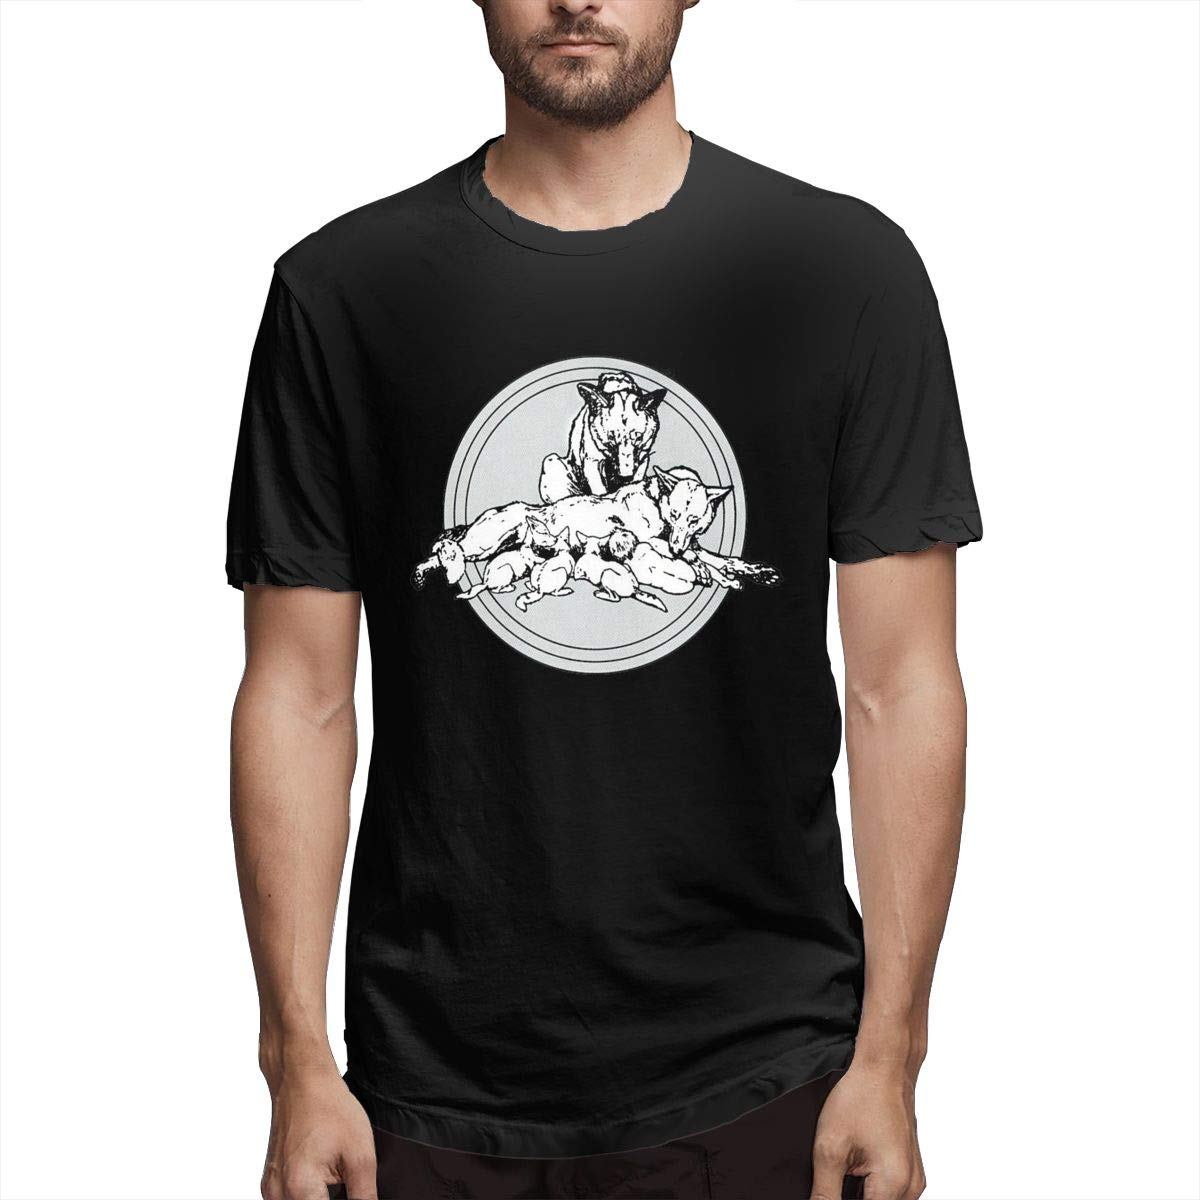 Linqarcon Mens Design with Bad Company Run with The Packs Weekend Round Neck Short Sleeve Tee Shirt